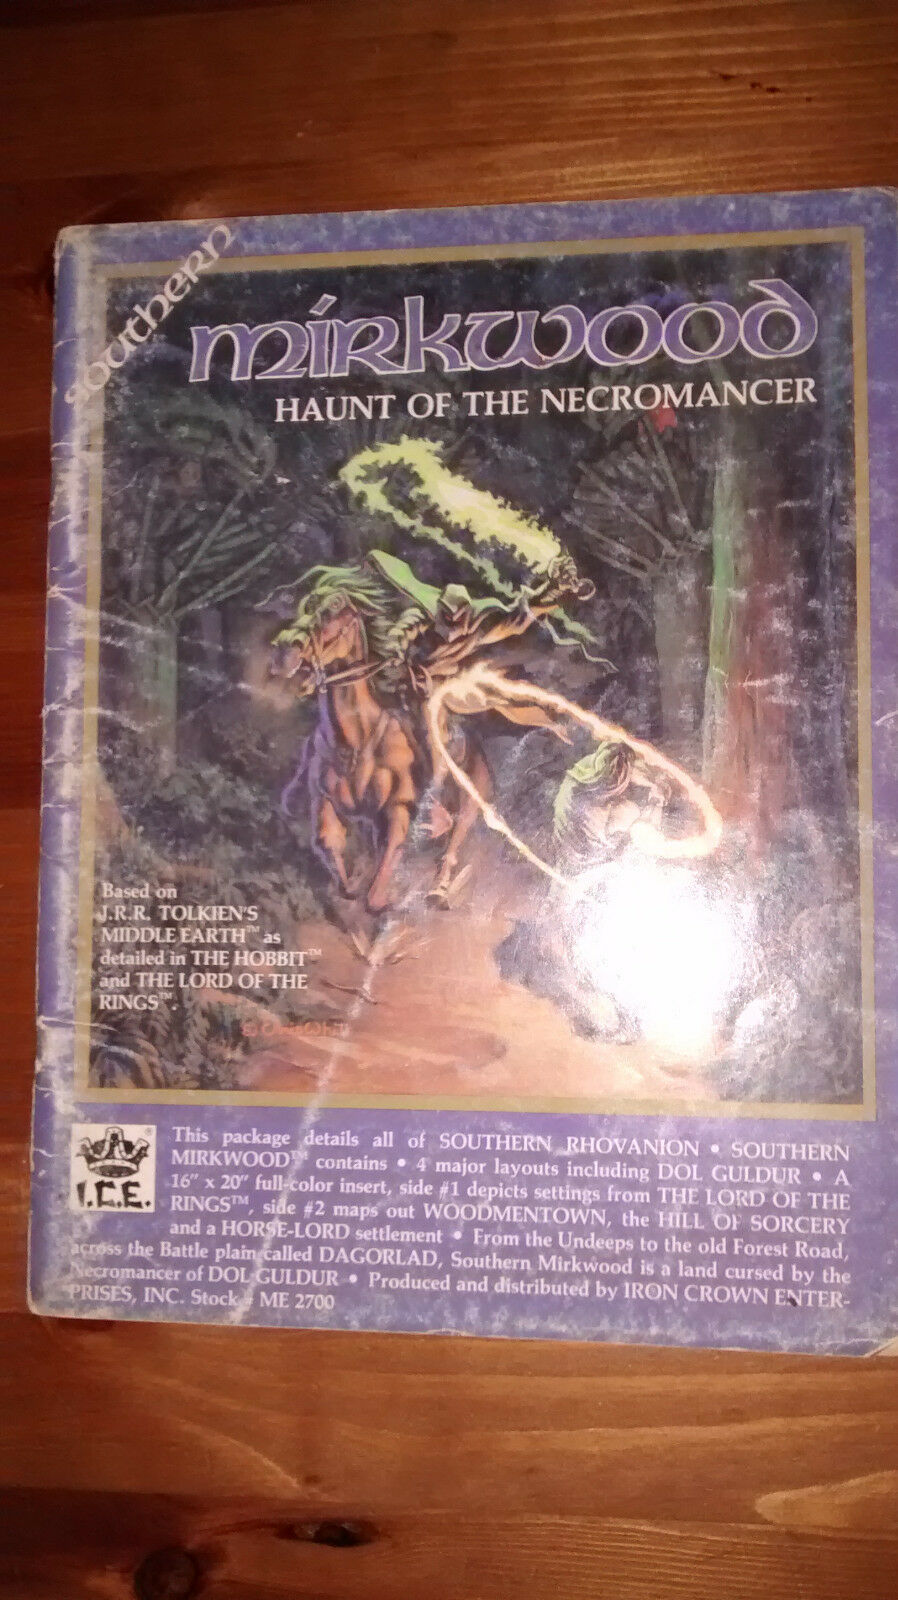 Southern Mirkwood Haunt Of The Necromancer Campaign MERP Rolemaster Roleplaying